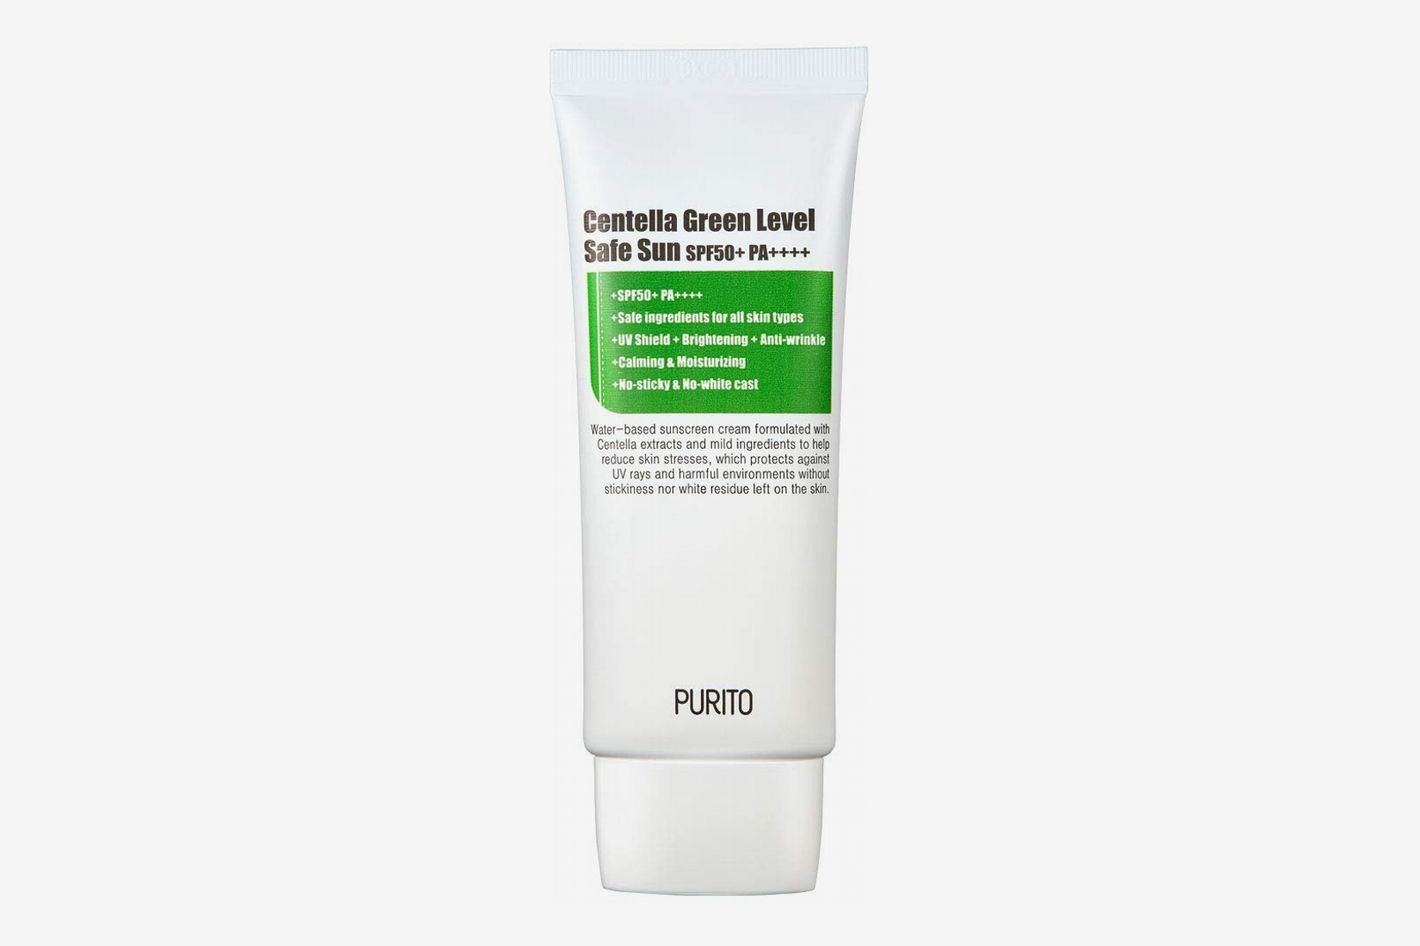 Purito Centella Green Level Safe Sun SPF